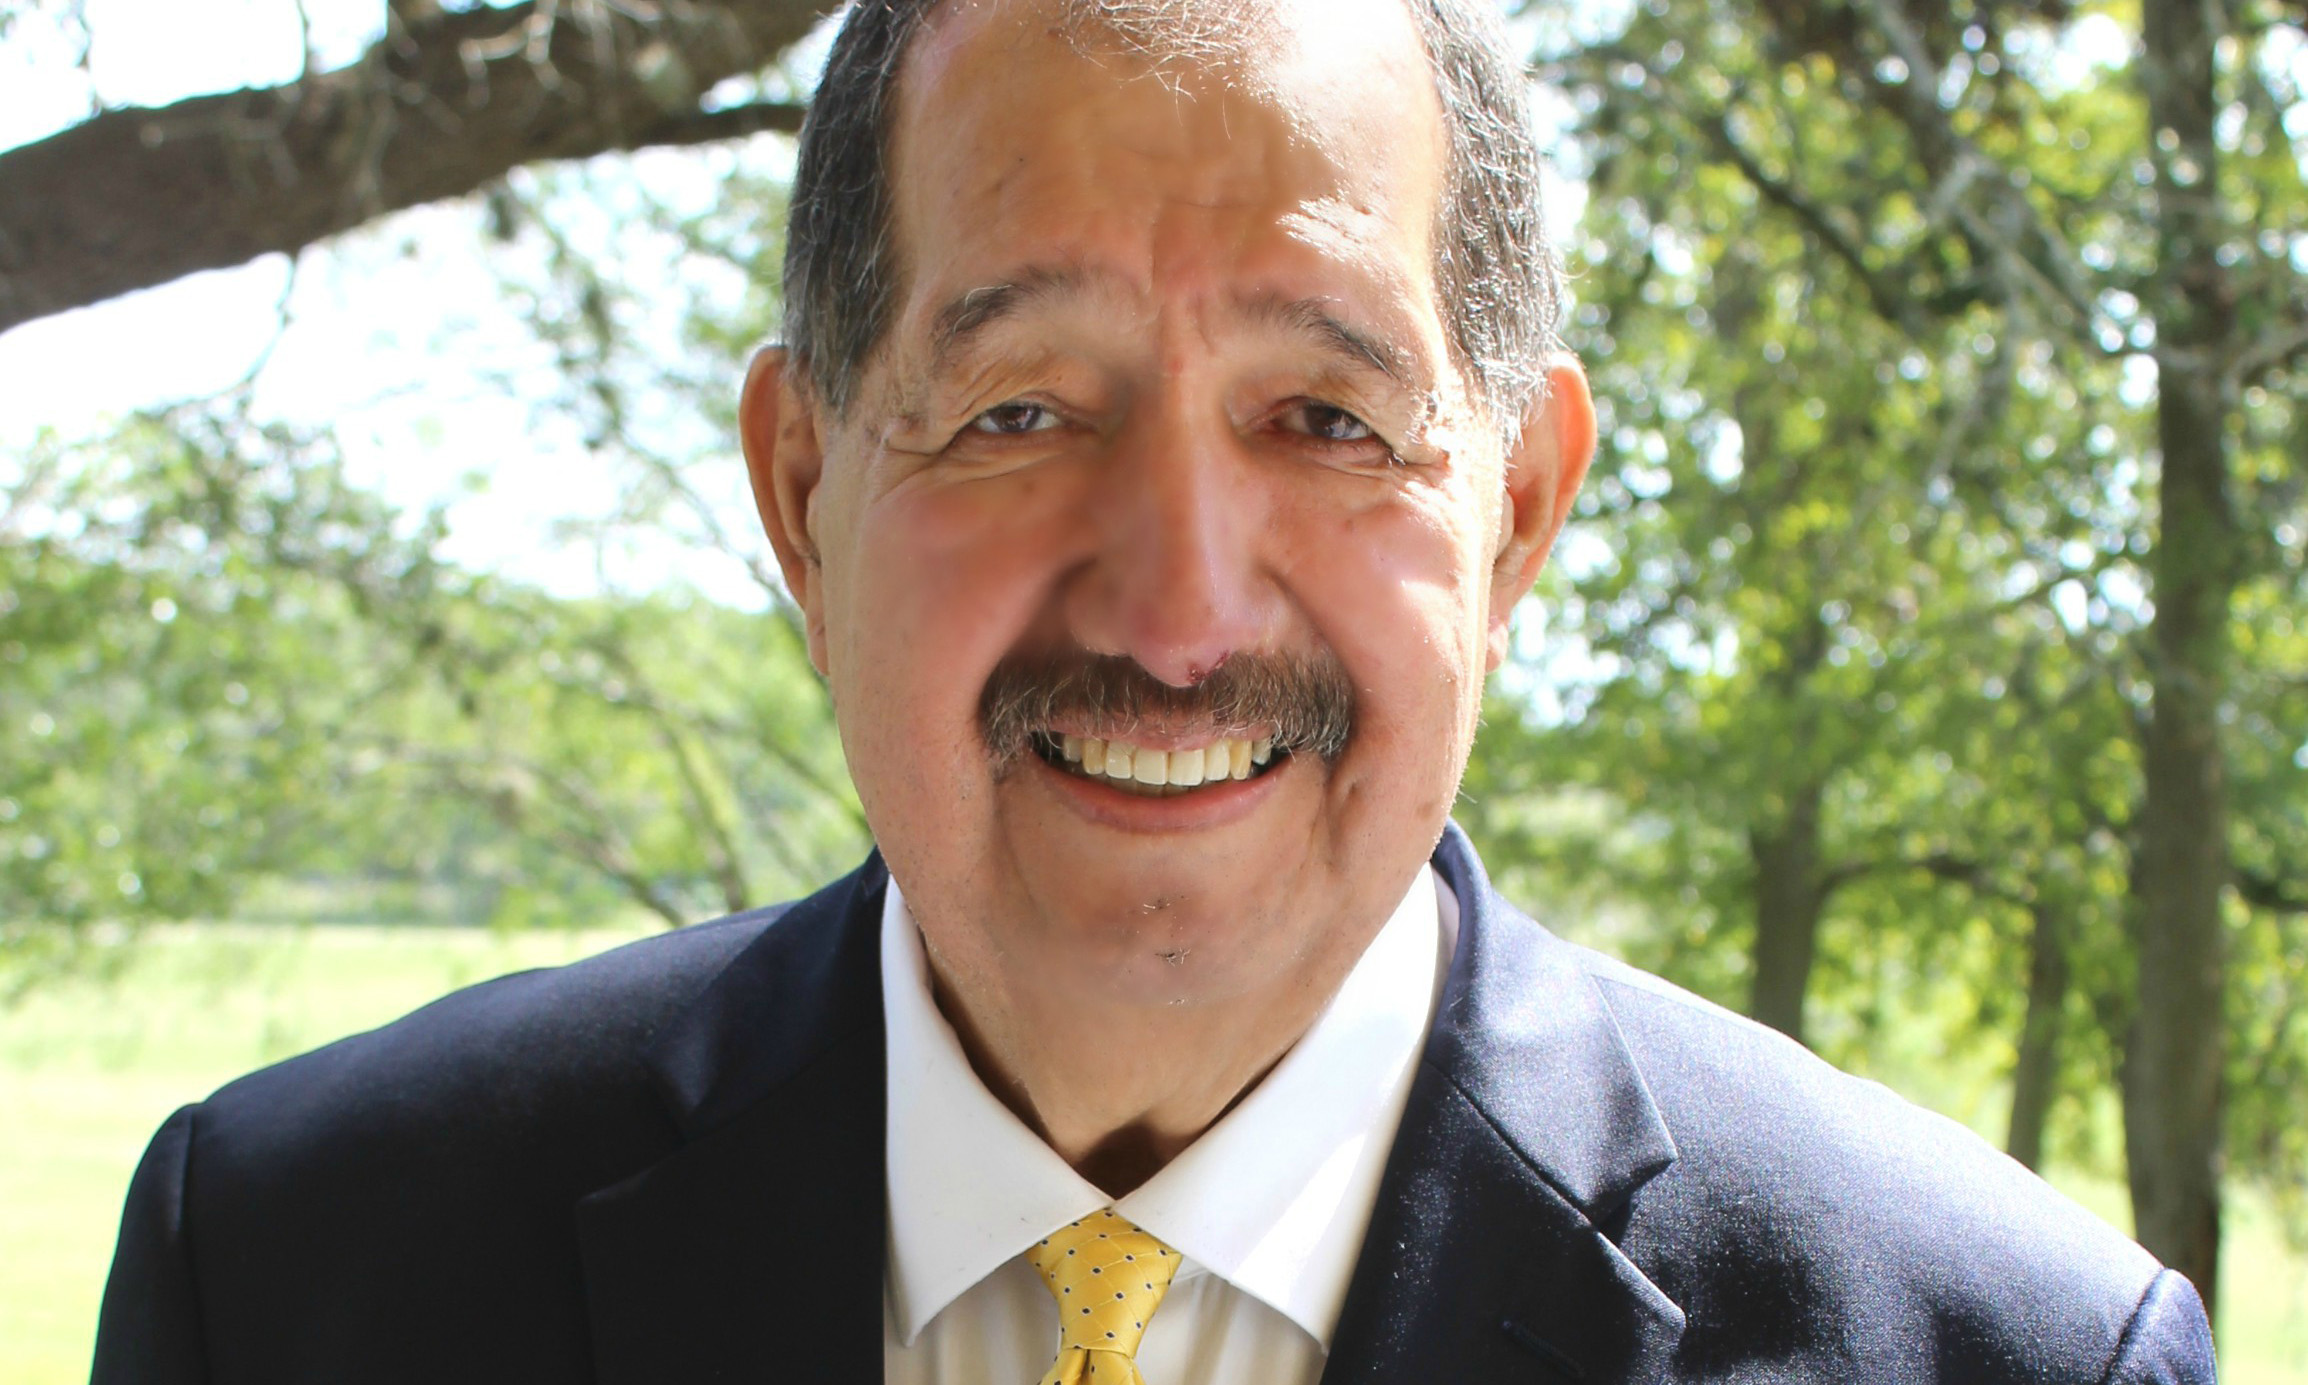 NHI founder and president Ernesto Nieto